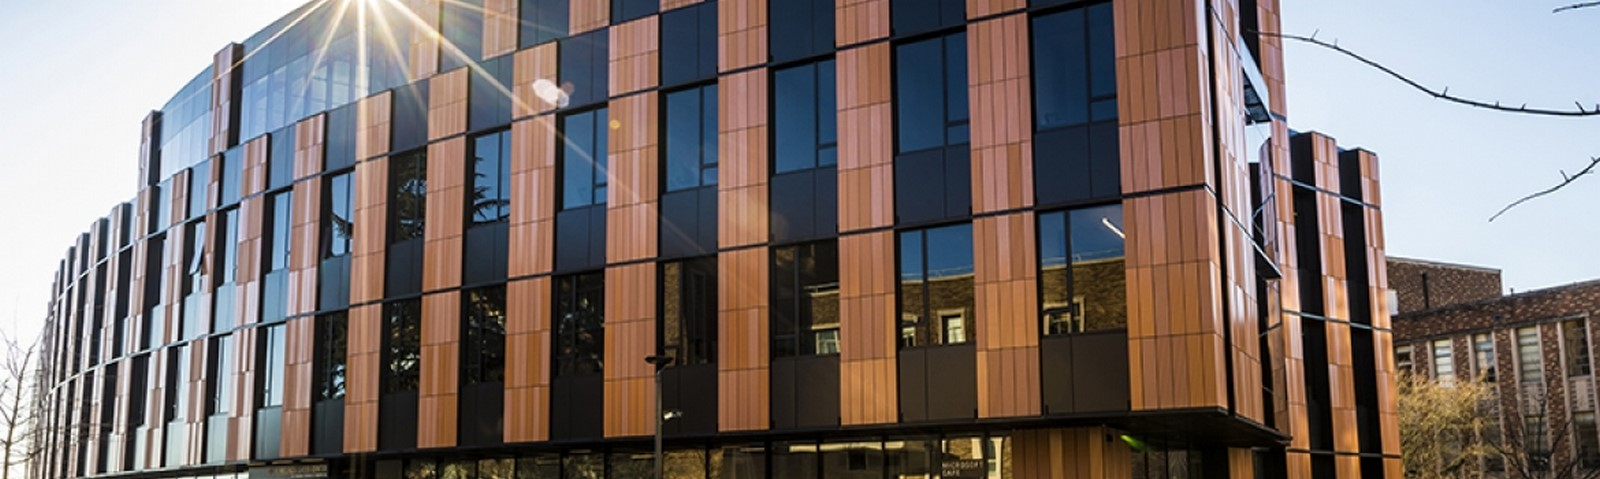 10 Webinars/ Online Lectures available on Environmental and Sustainable Architecture - Sheet3